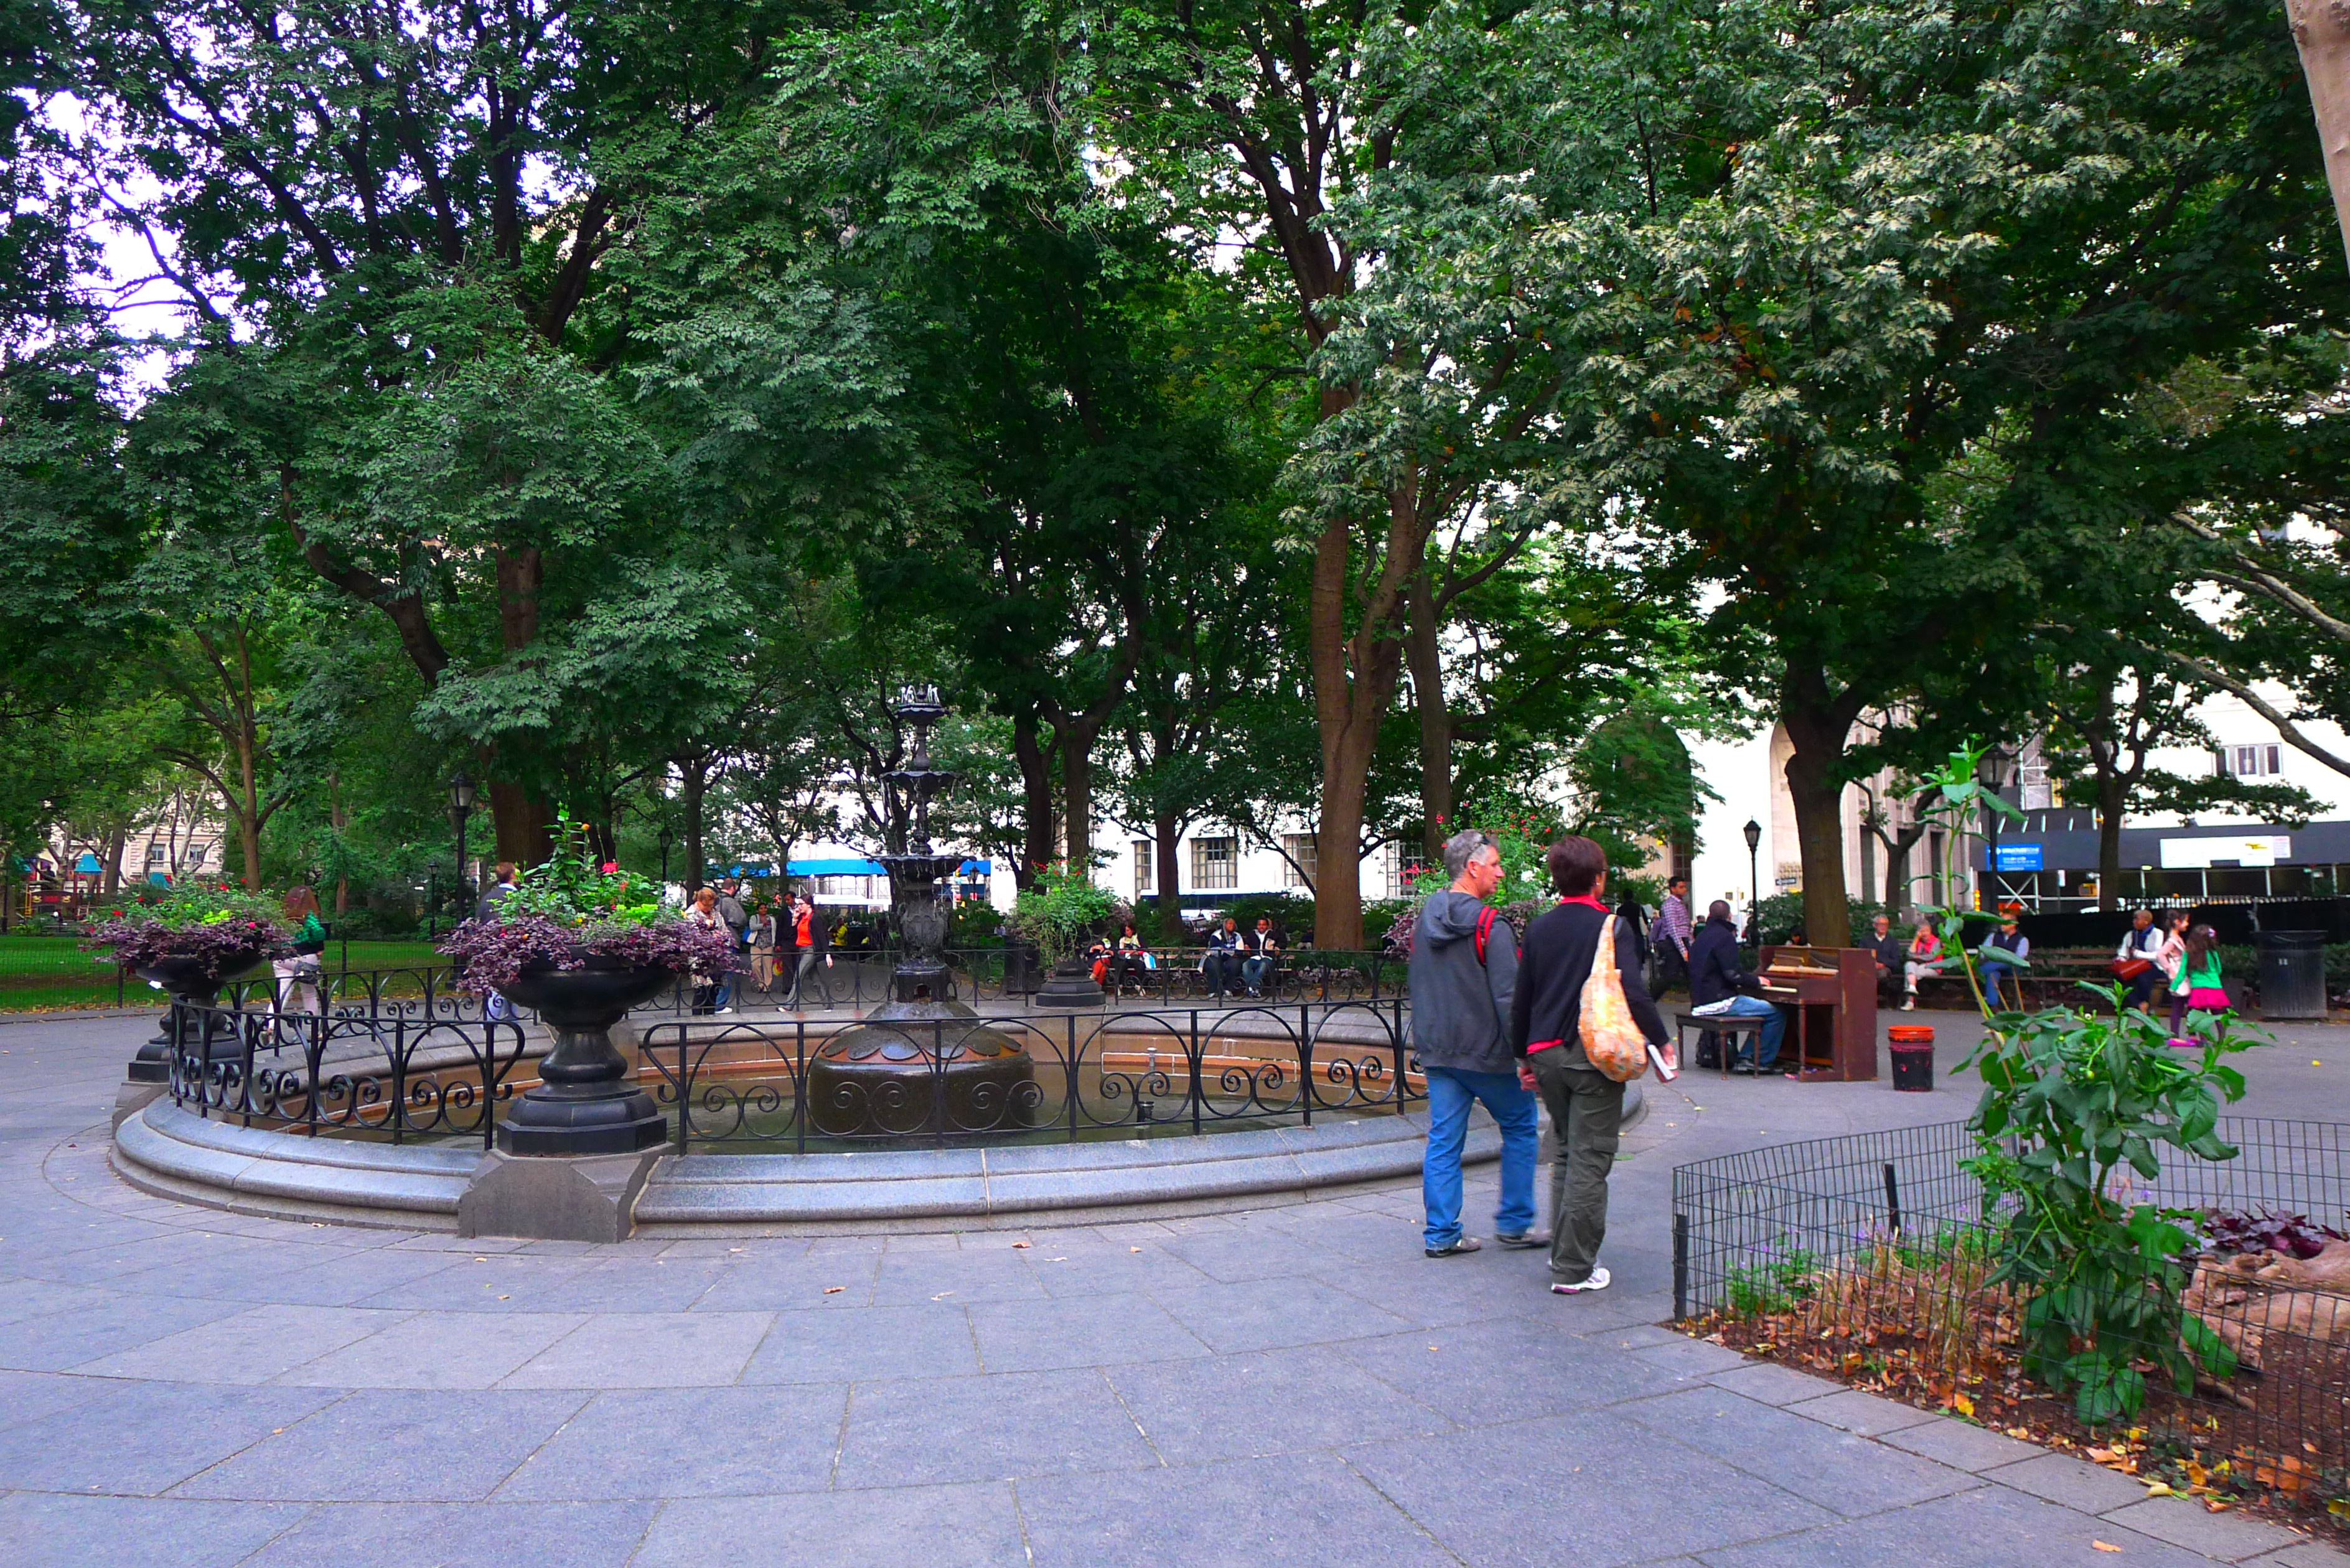 Back in Madison Square Park